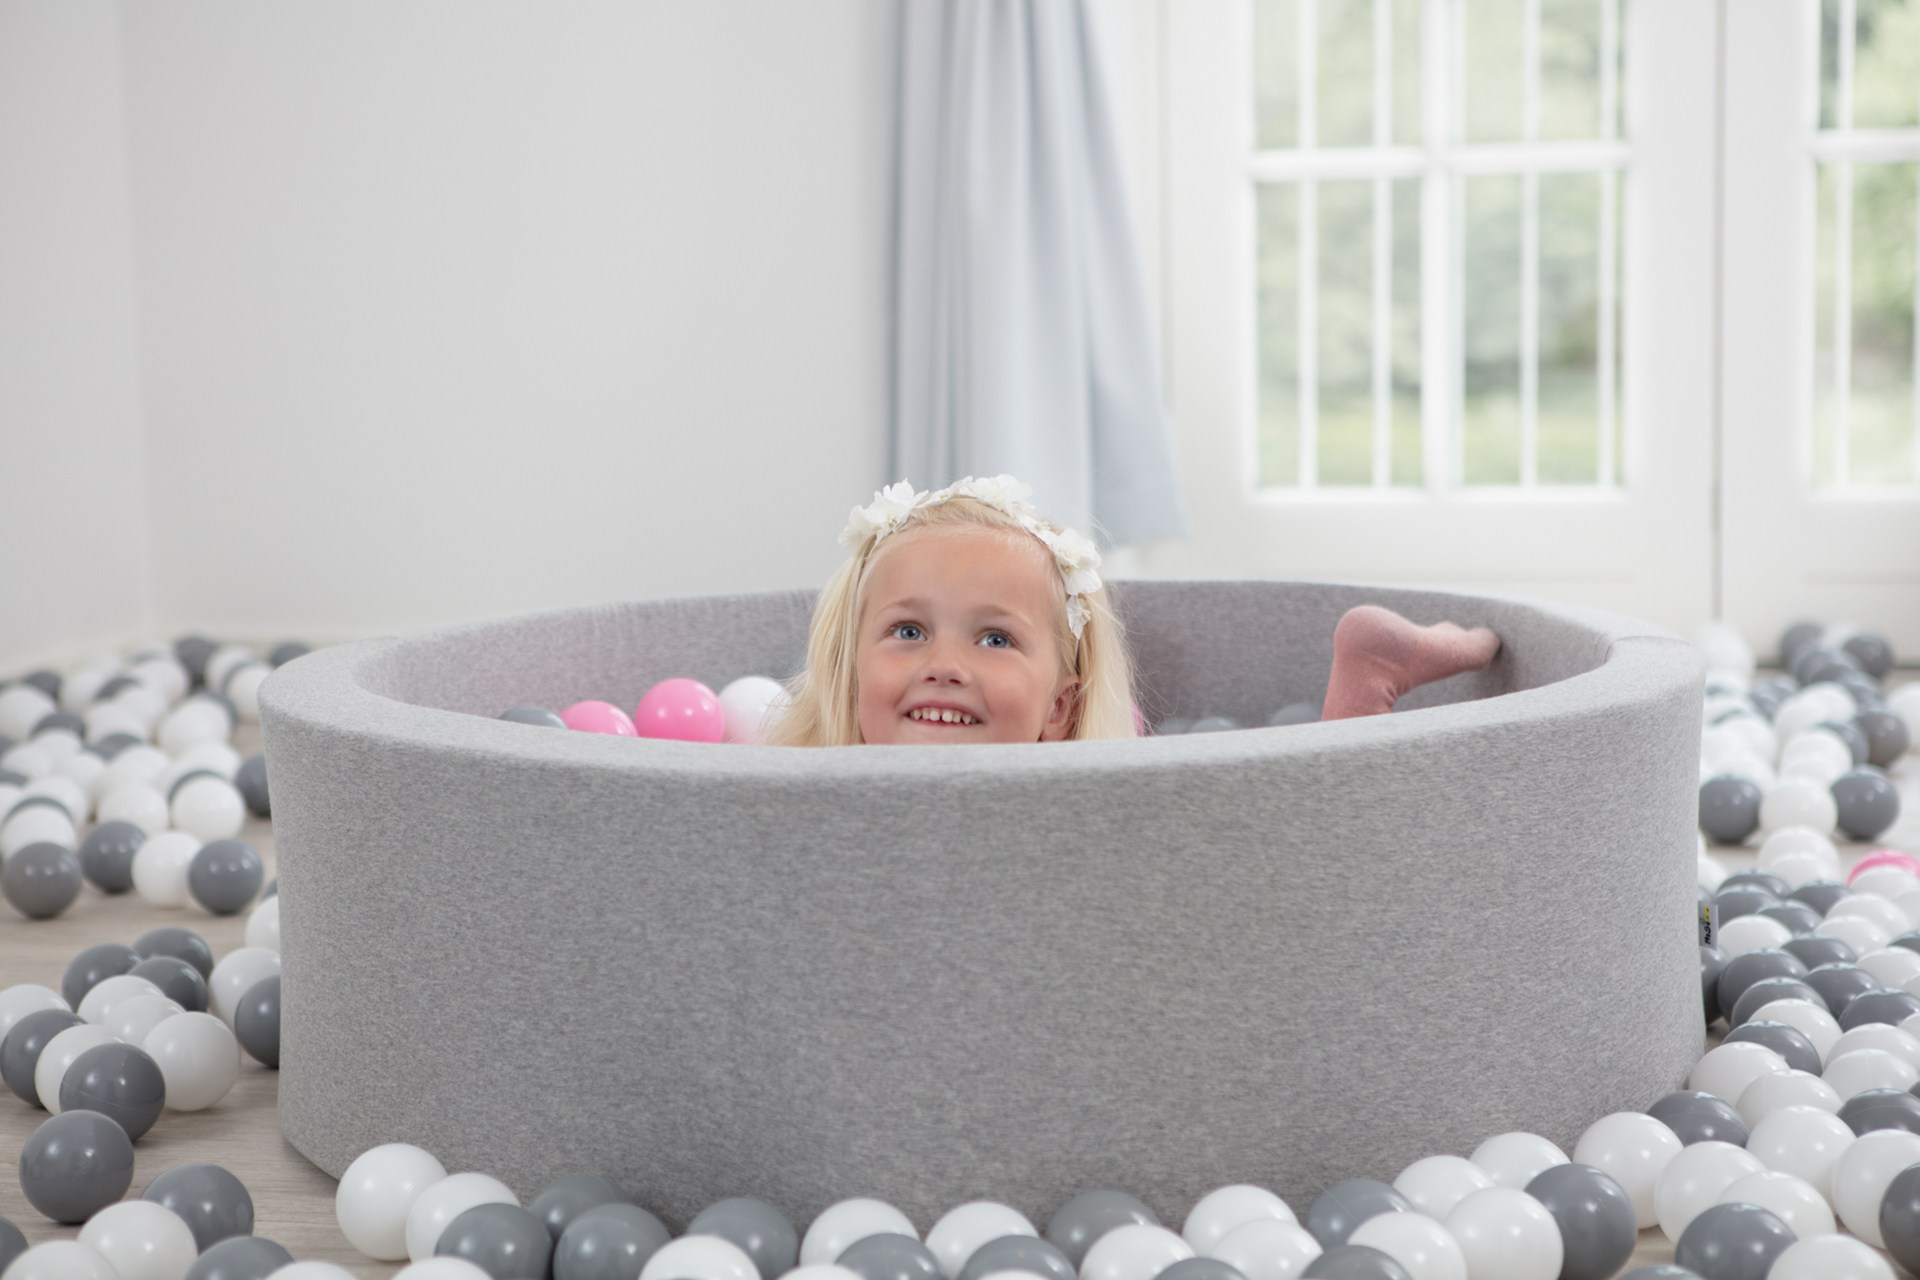 How many balls do you need for the ball pit?